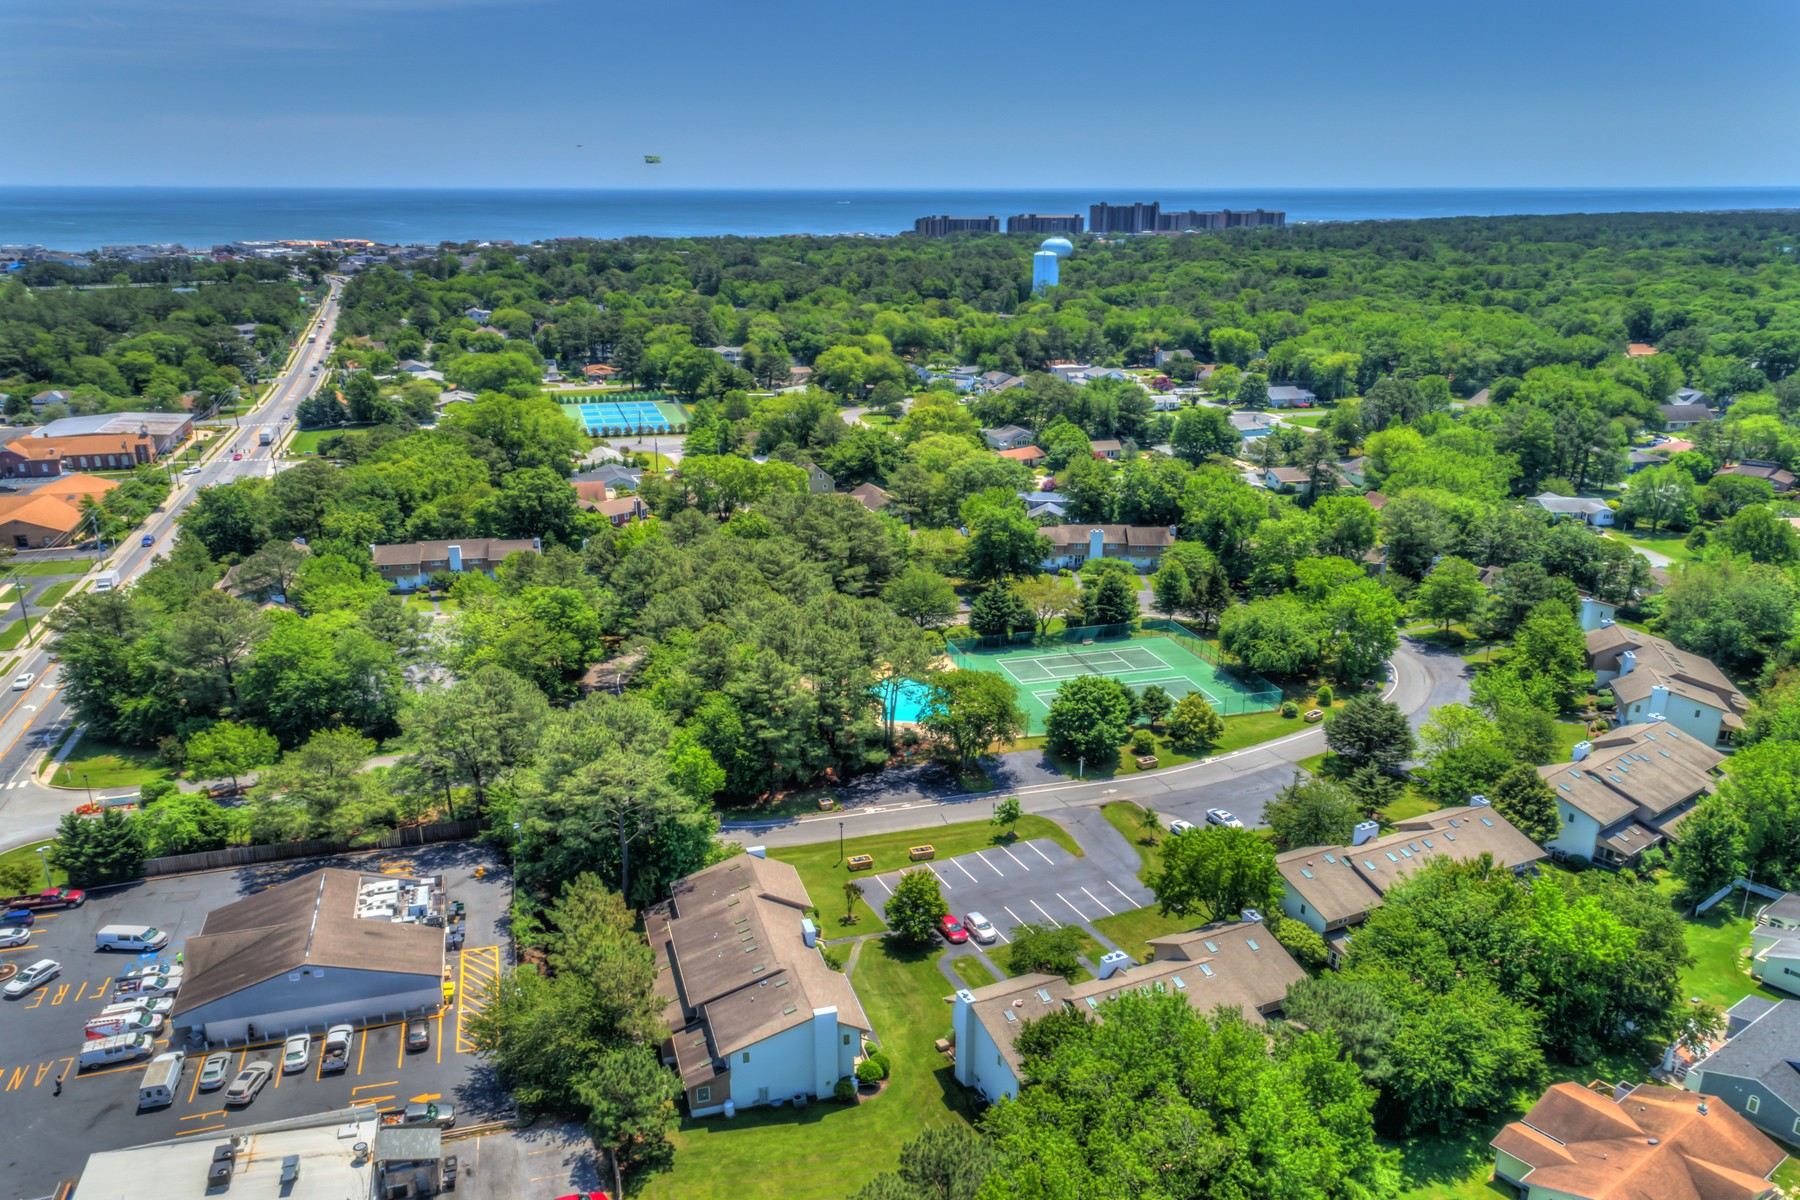 Condominium for Sale at 705 Bayberry Circle , 705, Bethany Beach, DE 19930 705 Bayberry Circle 705 Bethany Beach, Delaware, 19930 United States